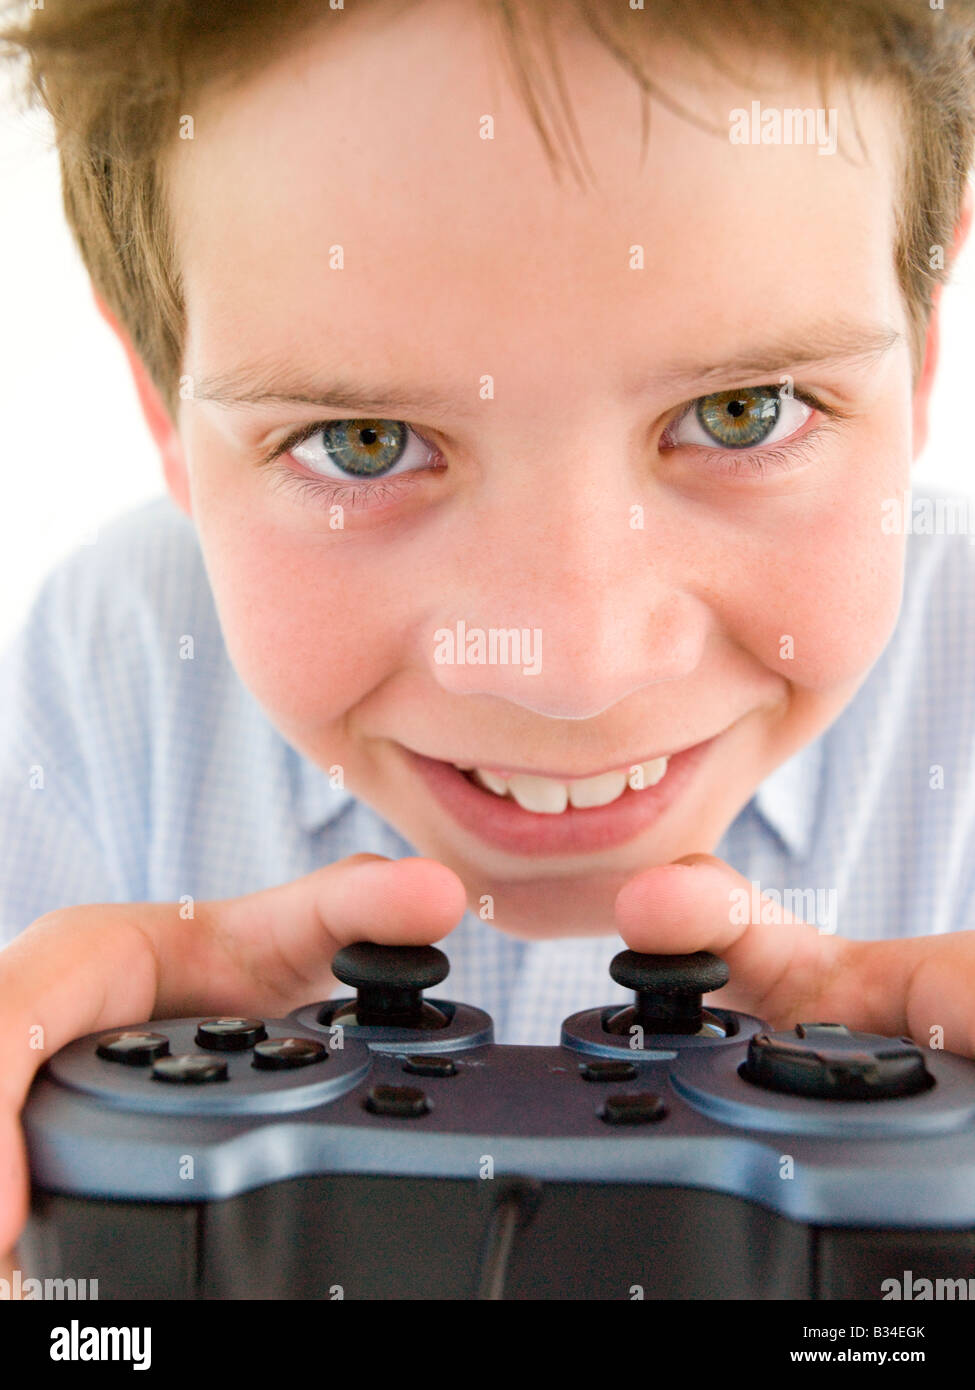 Young boy using videogame controller smiling - Stock Image